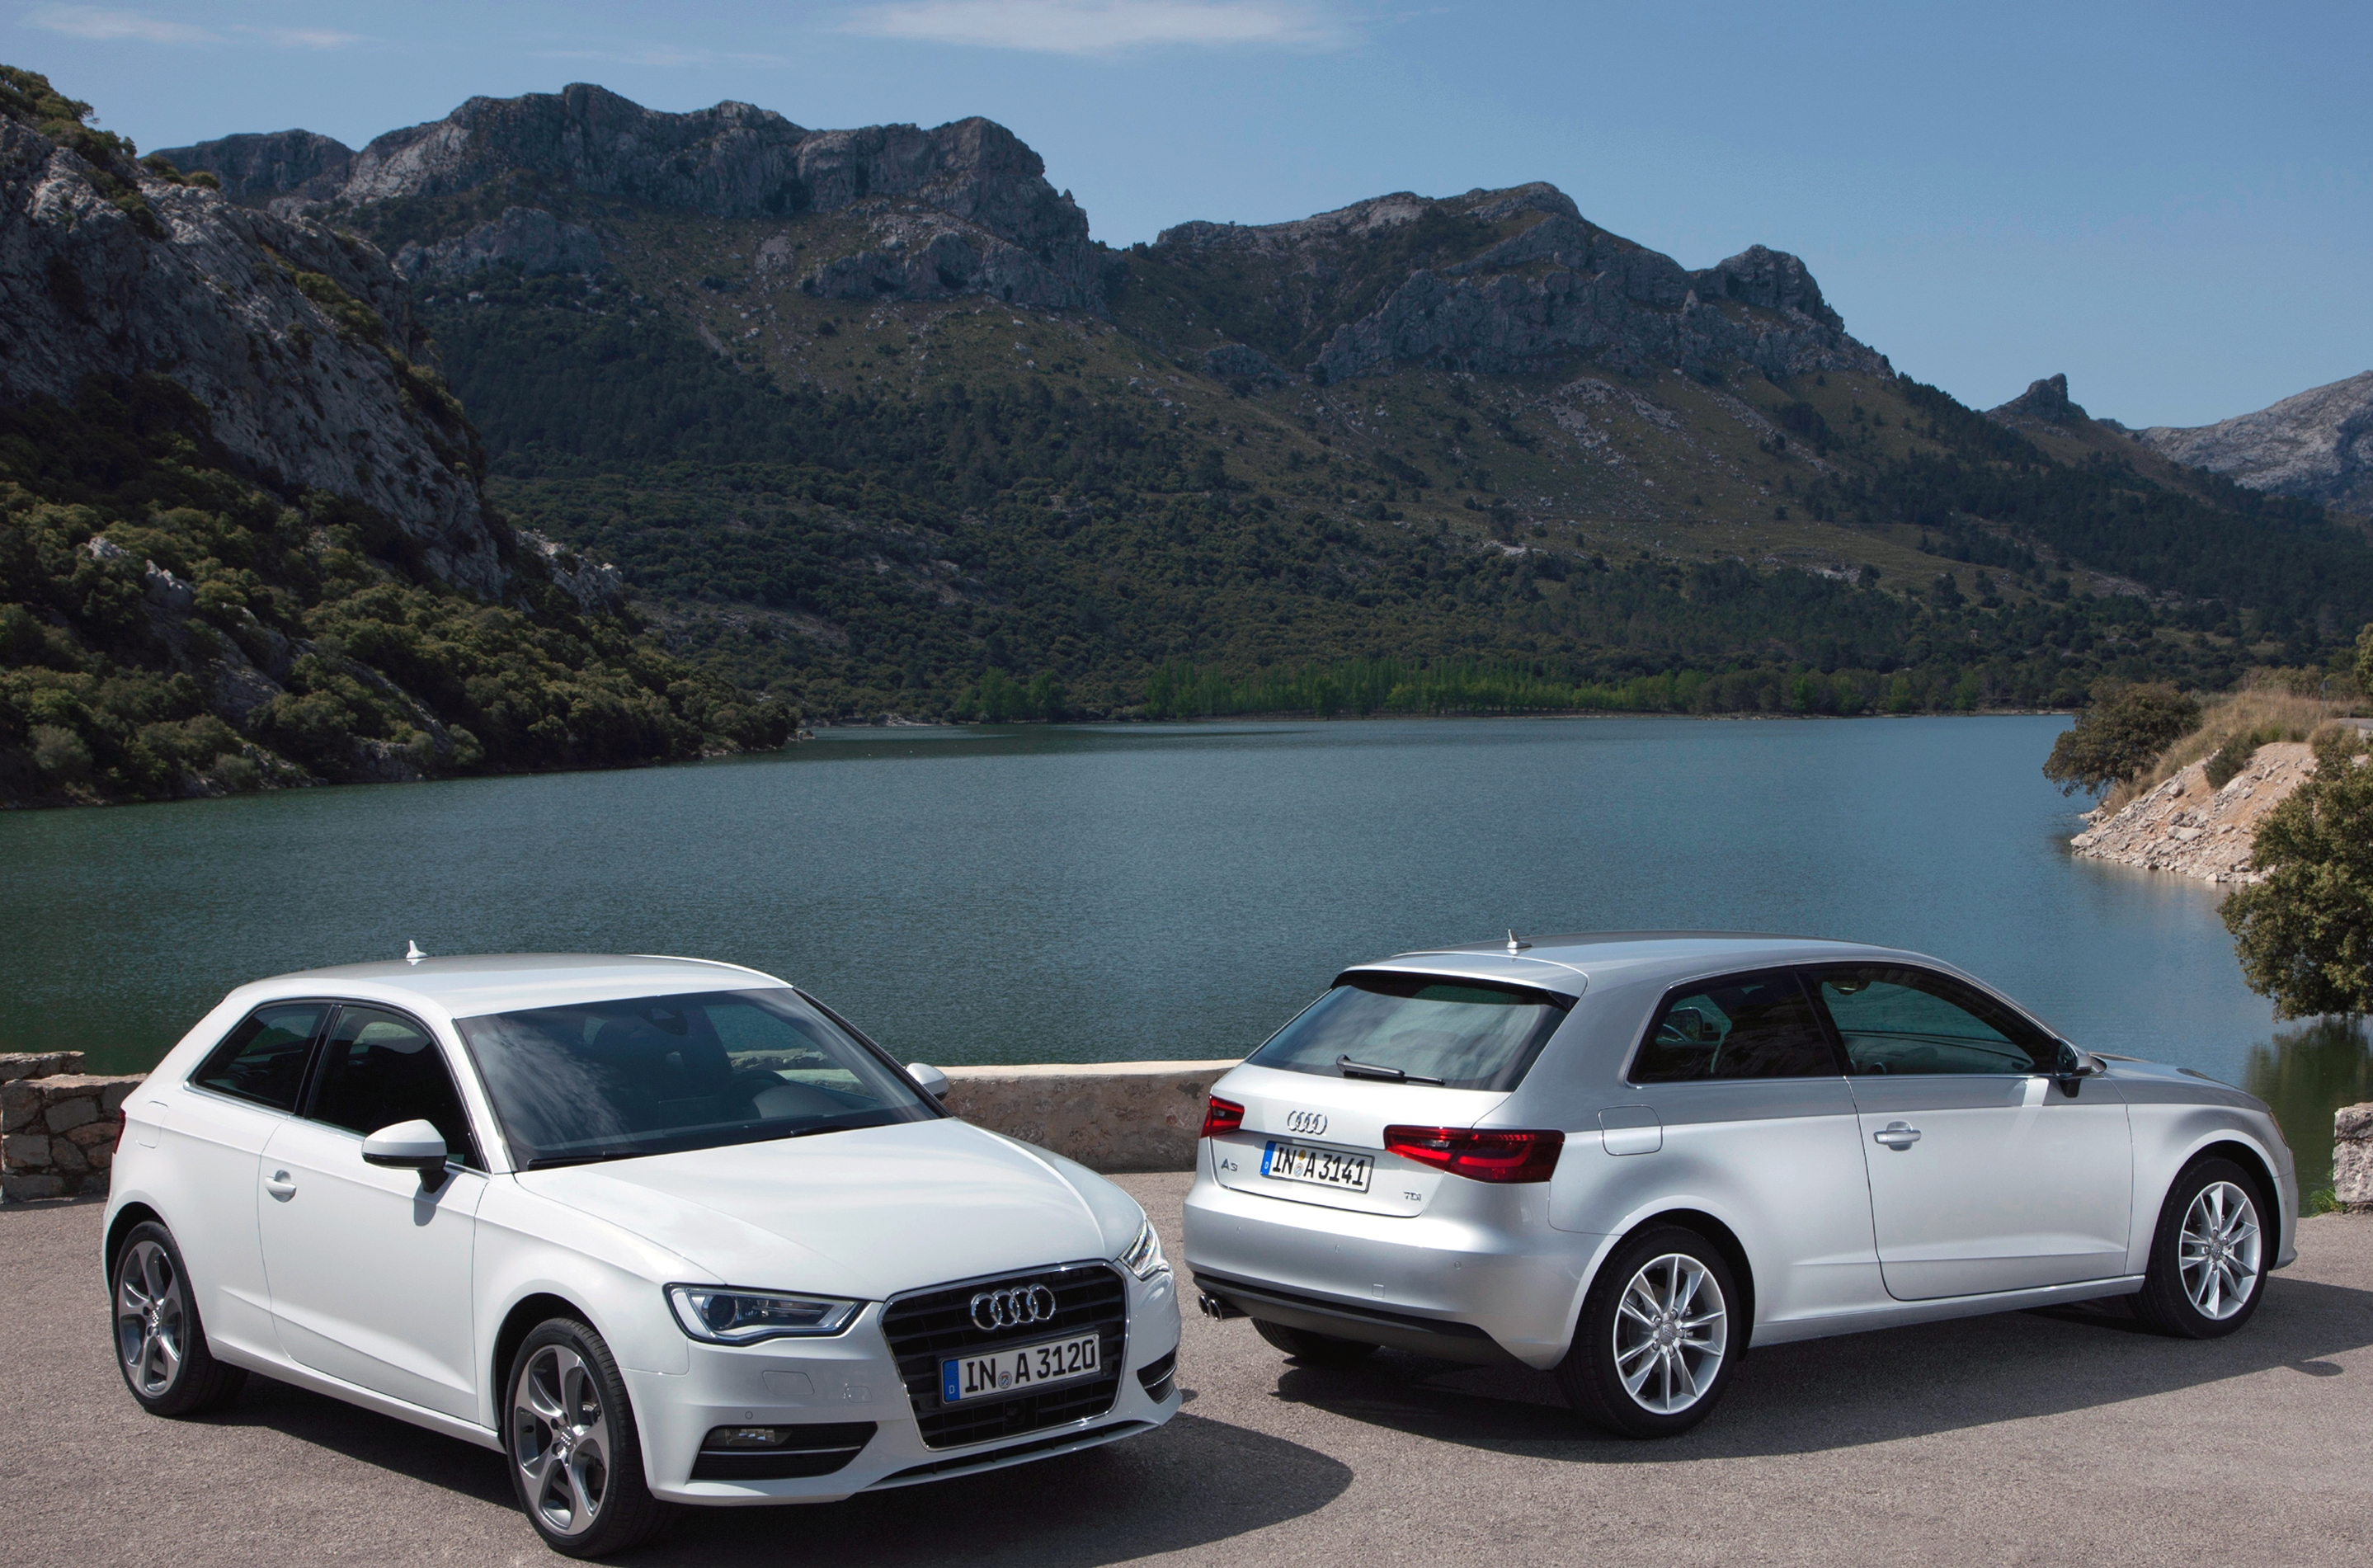 audi a3 2 0 tdi sport 150ps car write ups. Black Bedroom Furniture Sets. Home Design Ideas